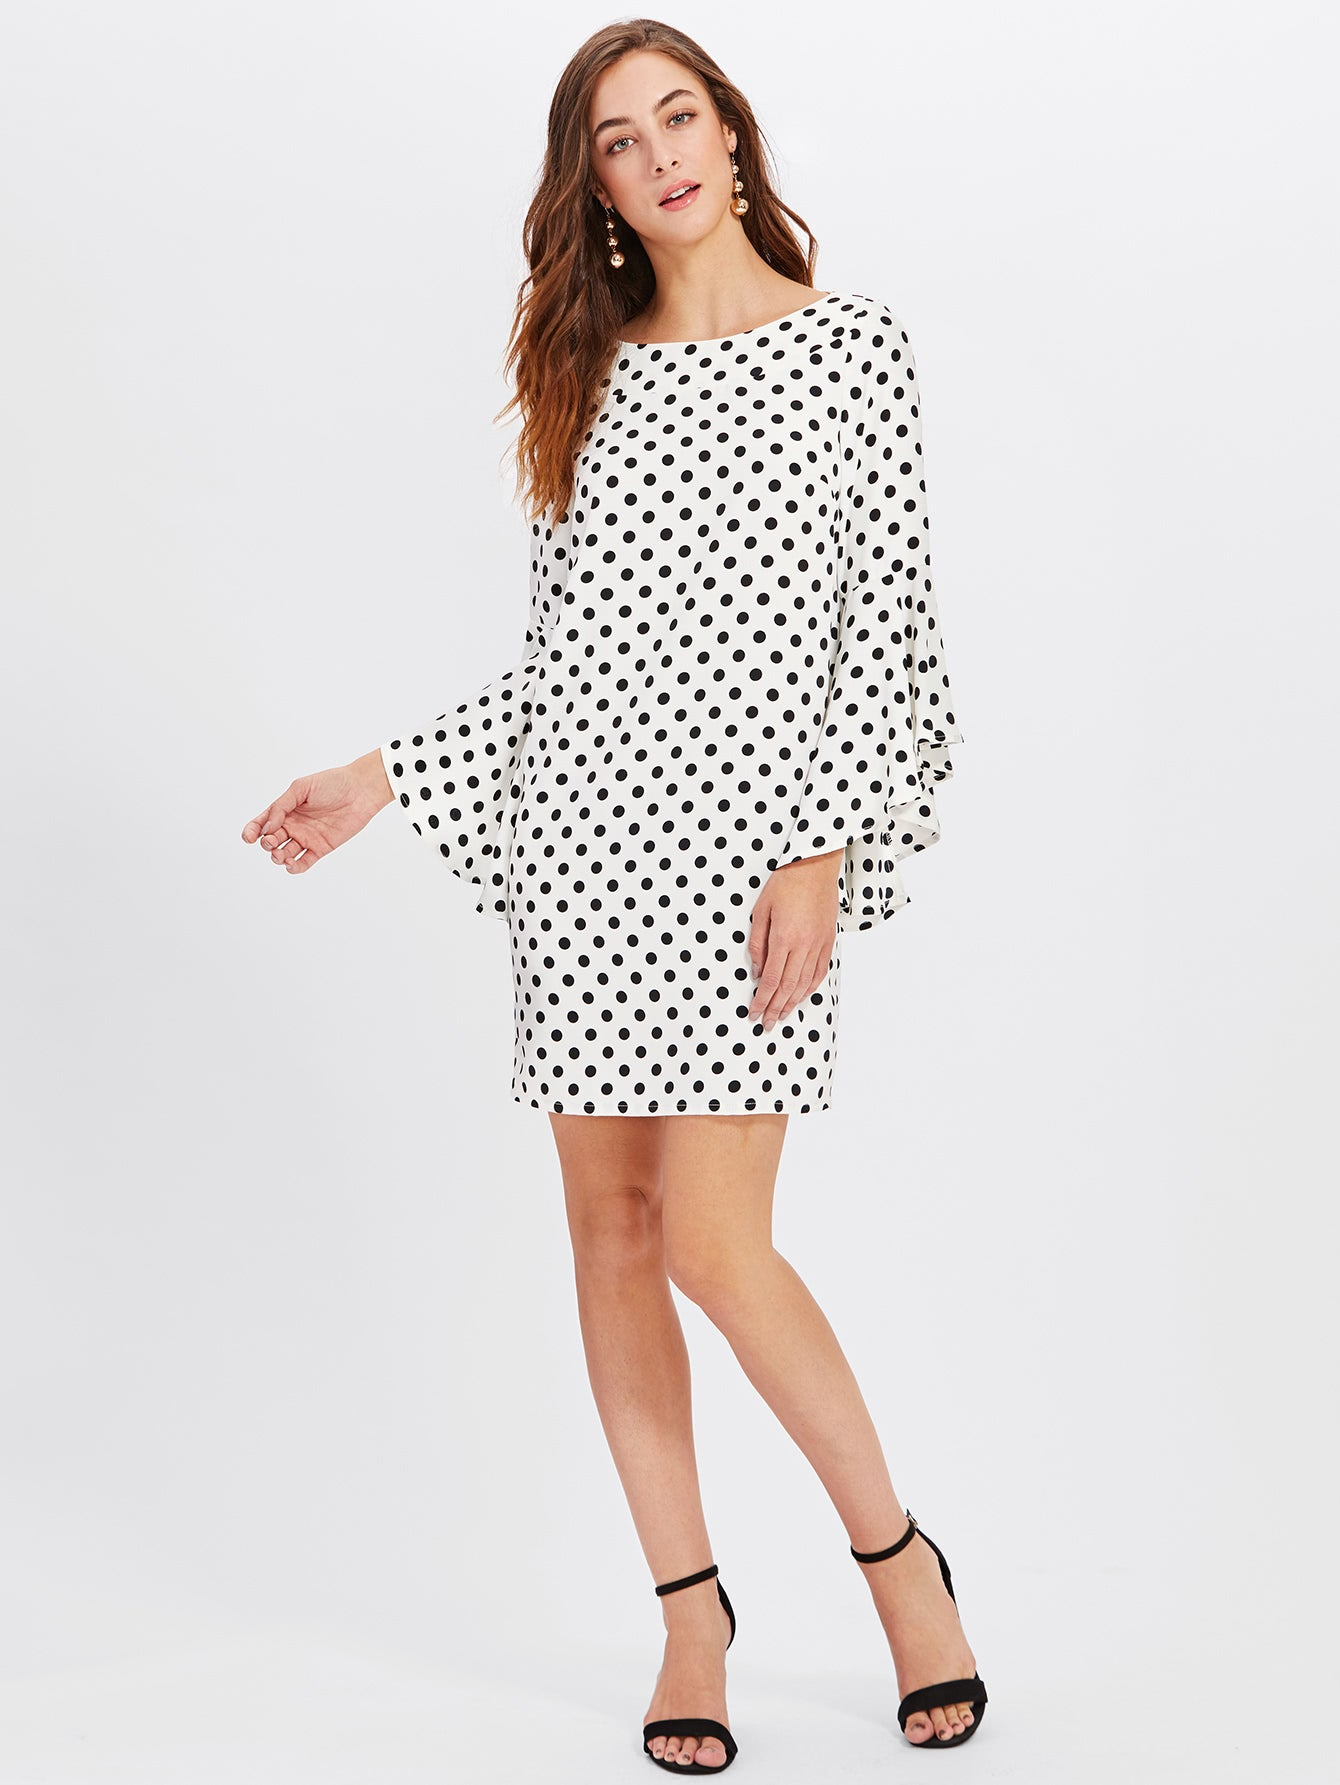 Polka Dot Dress - Our Park Shop